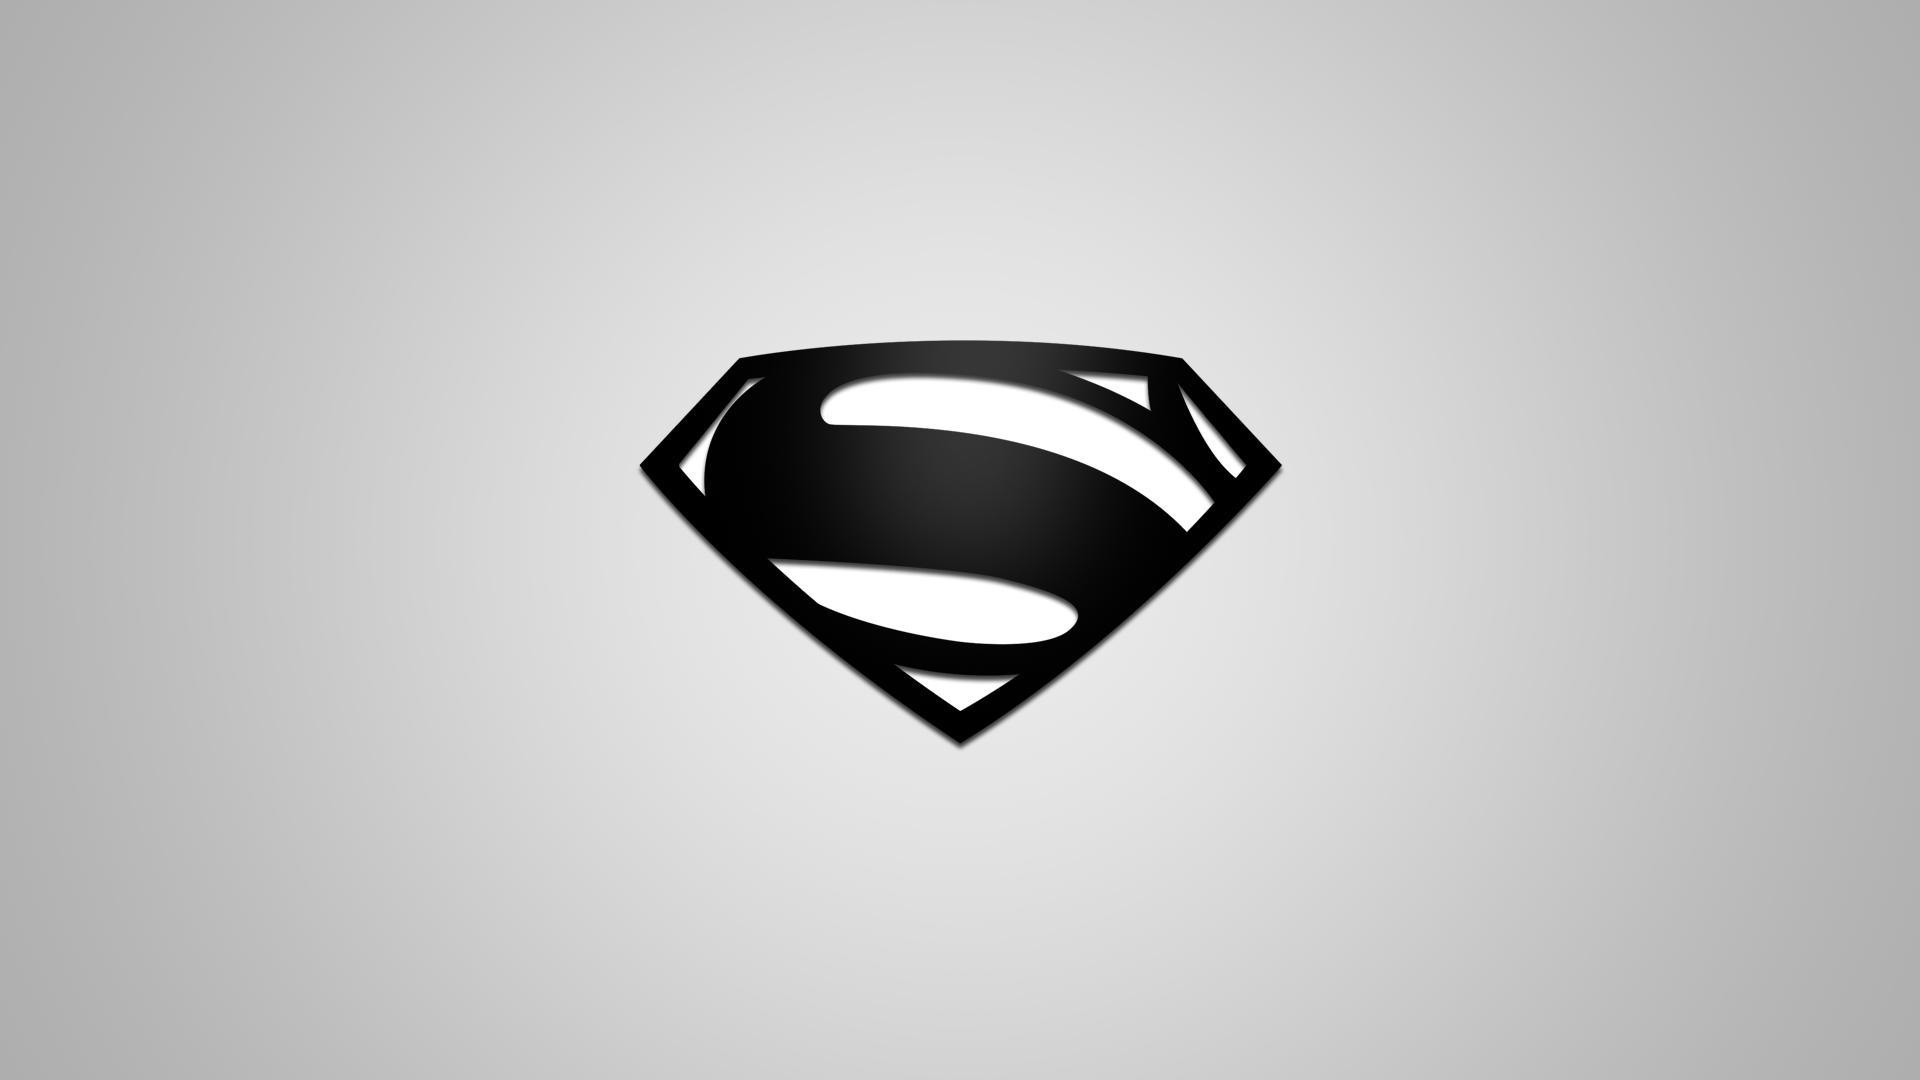 Superman full hd wallpaper and background image 1920x1080 id687834 comics superman superman logo wallpaper voltagebd Choice Image